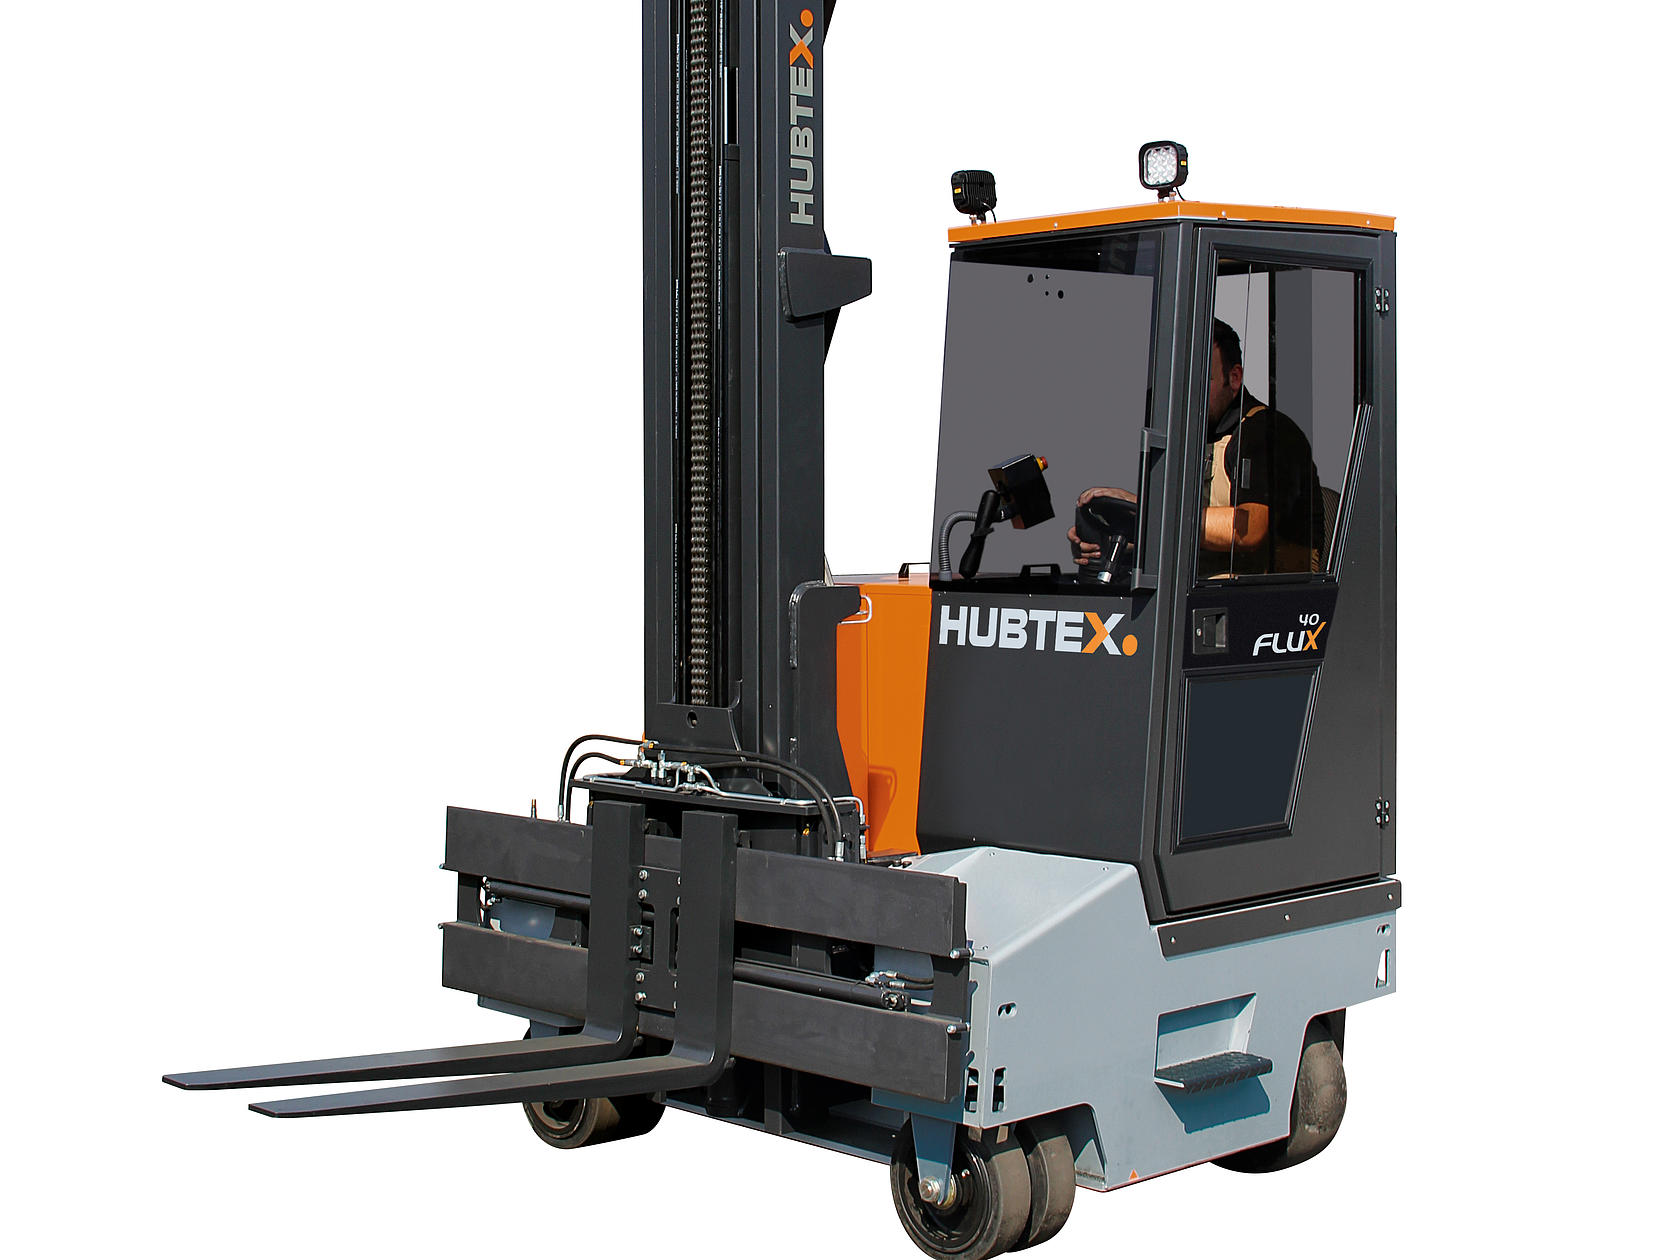 The FluX electric multidirectional counterbalance forklift from HUBTEX